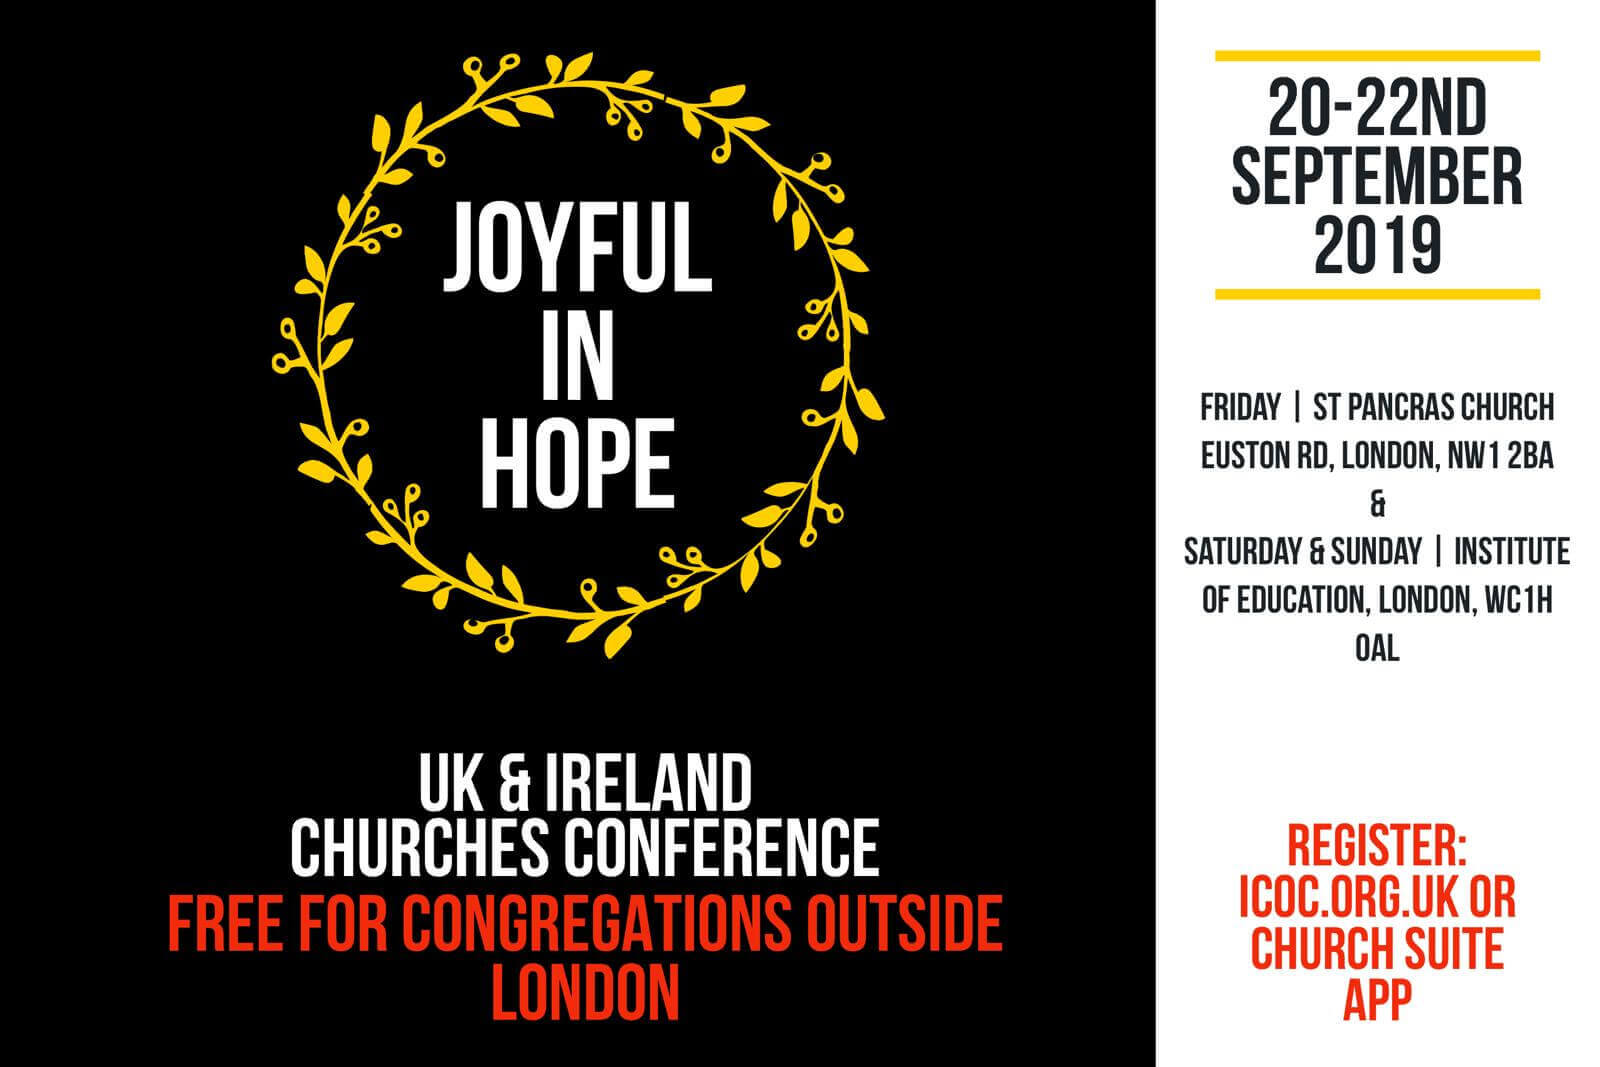 joyful in hope uk christian conference